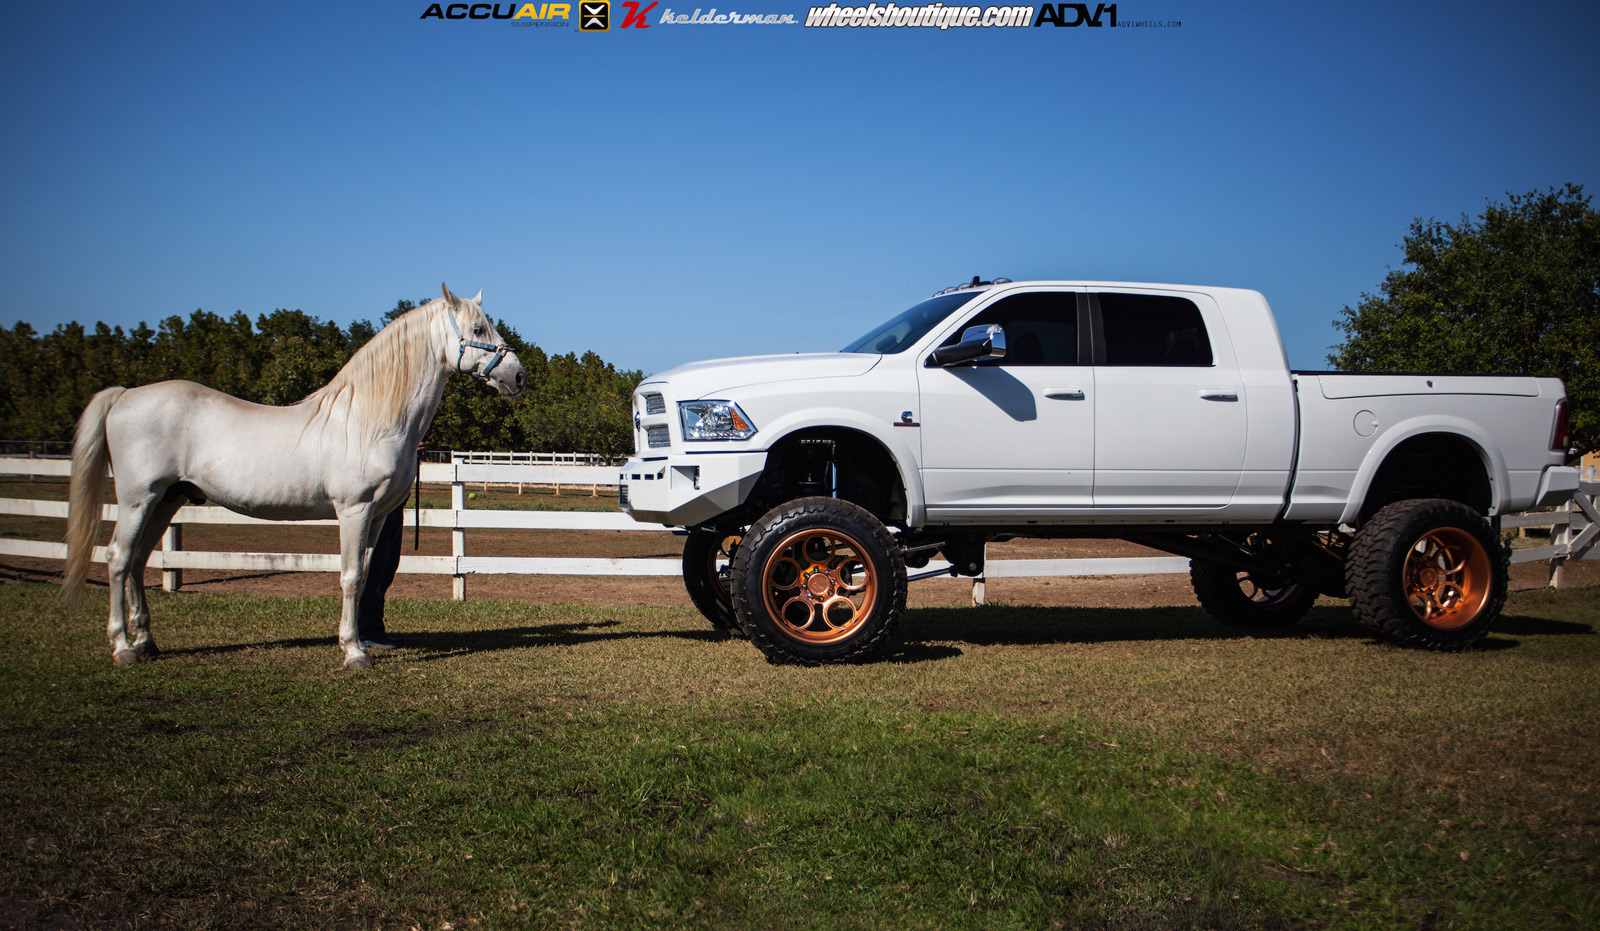 Lifted Ram 2500 On Rose Gold Wheels Meets a Horse ...